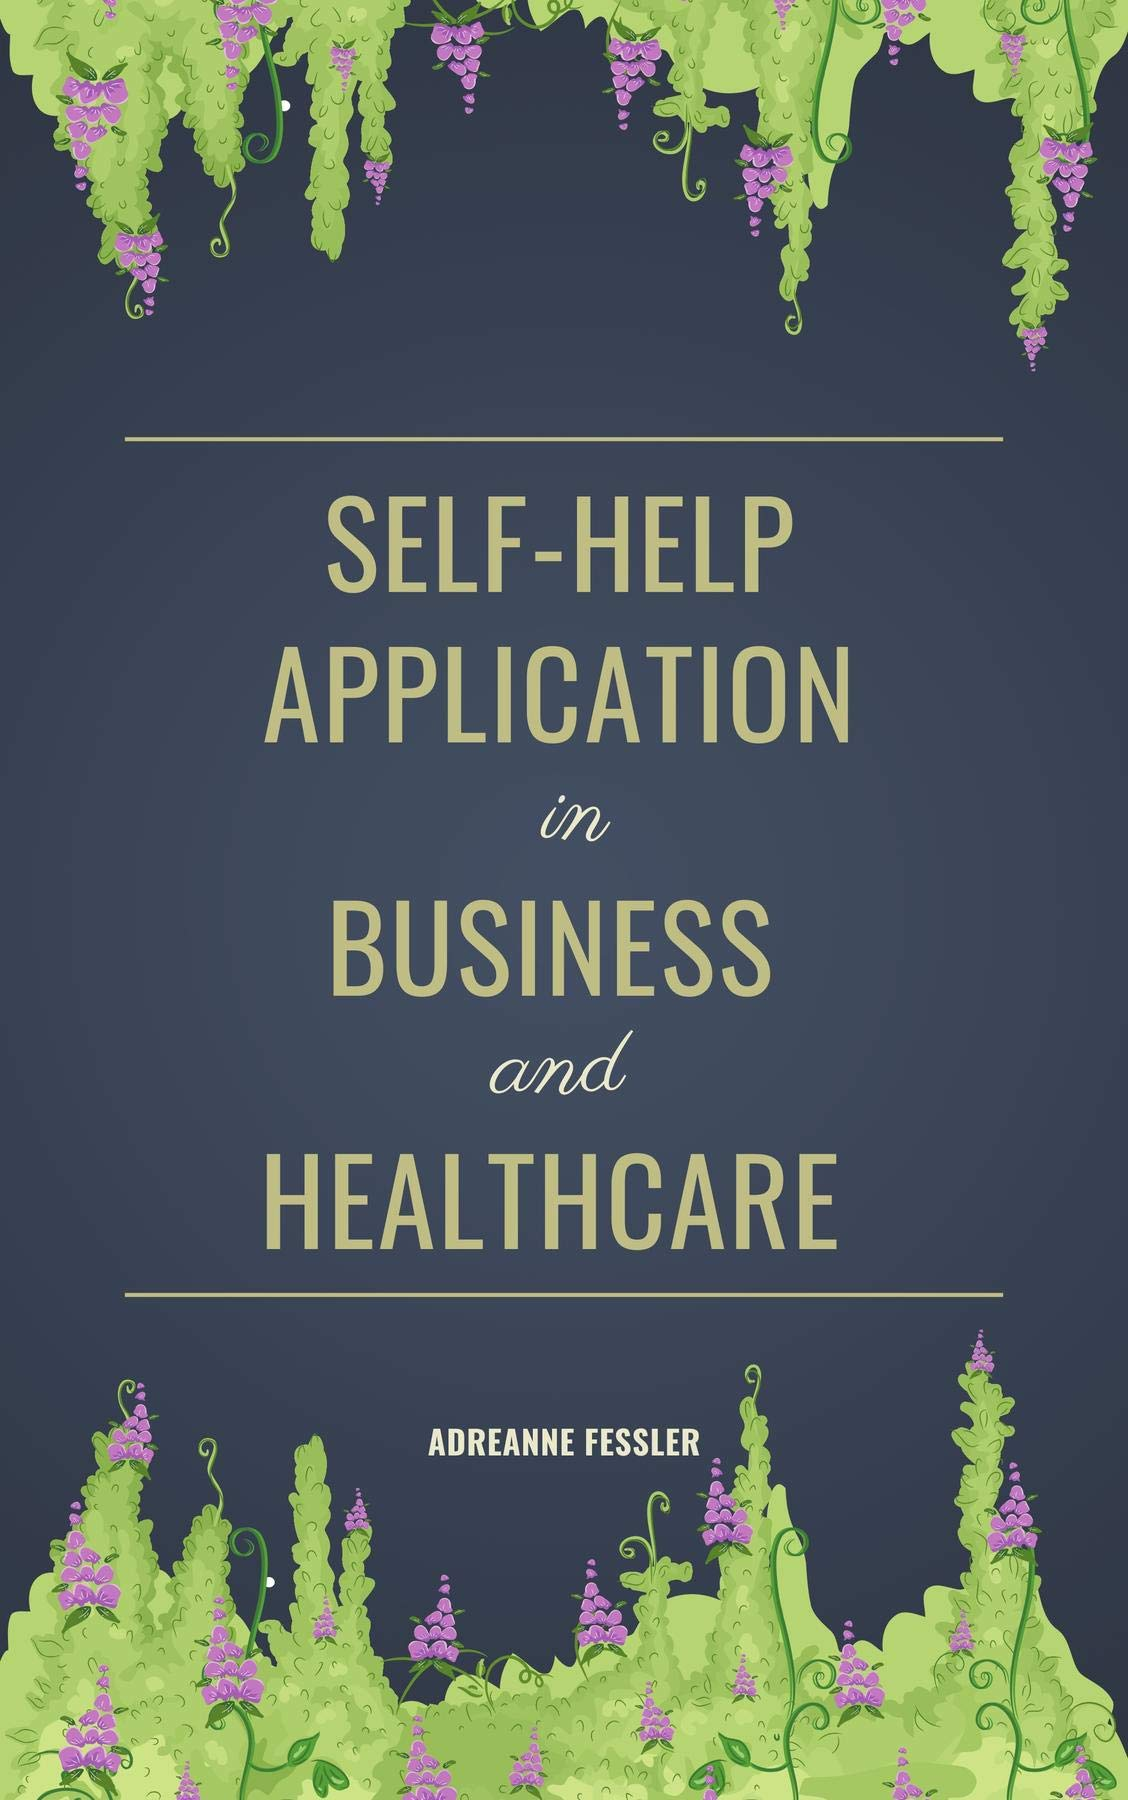 Self-help application in business and healthcare